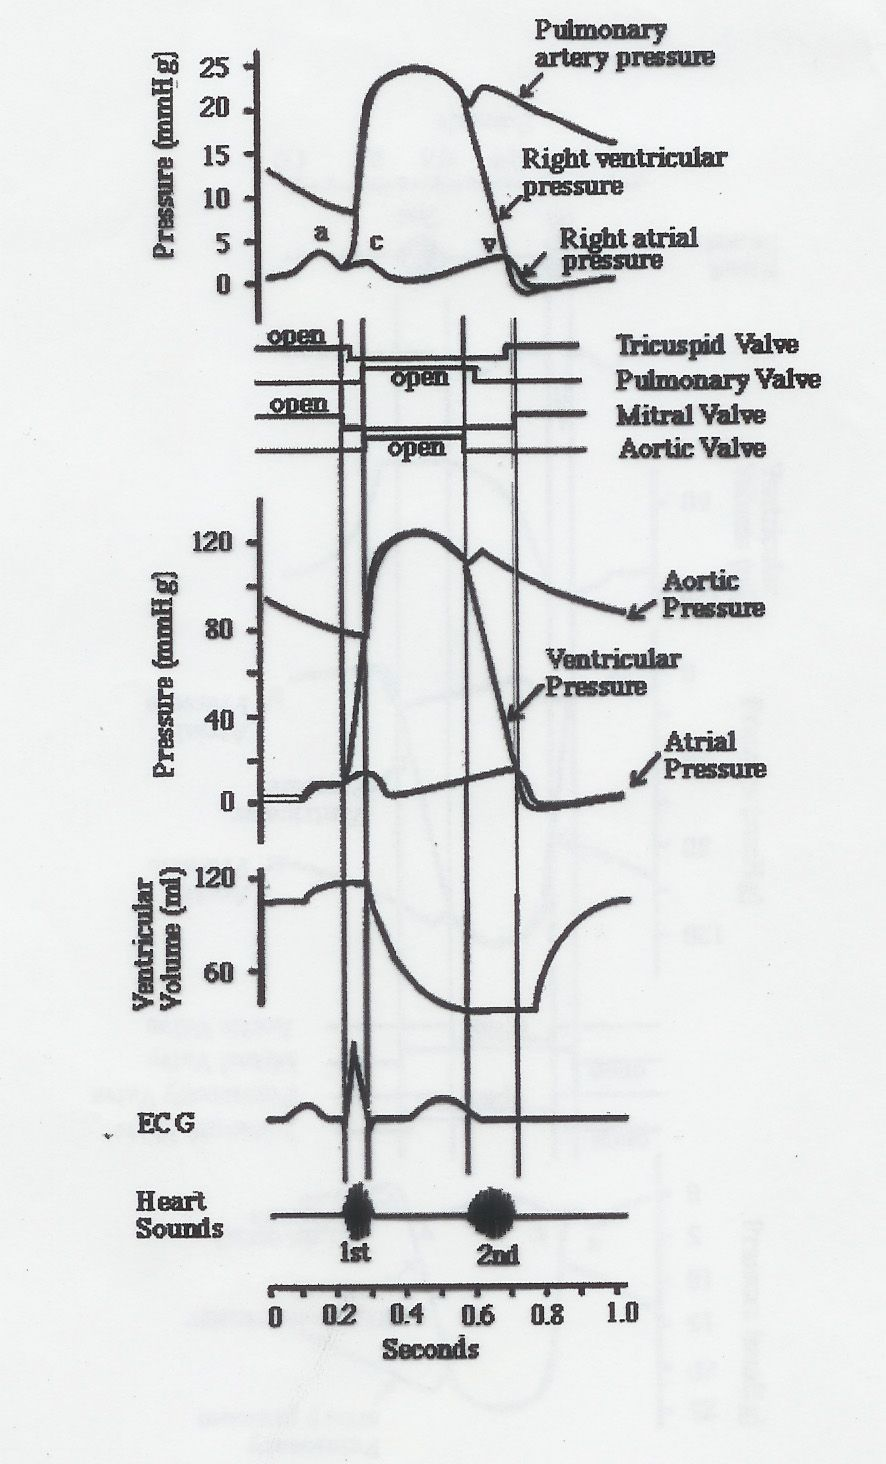 Wiggers Diagram Explained | LV Systolic Function | Pinterest